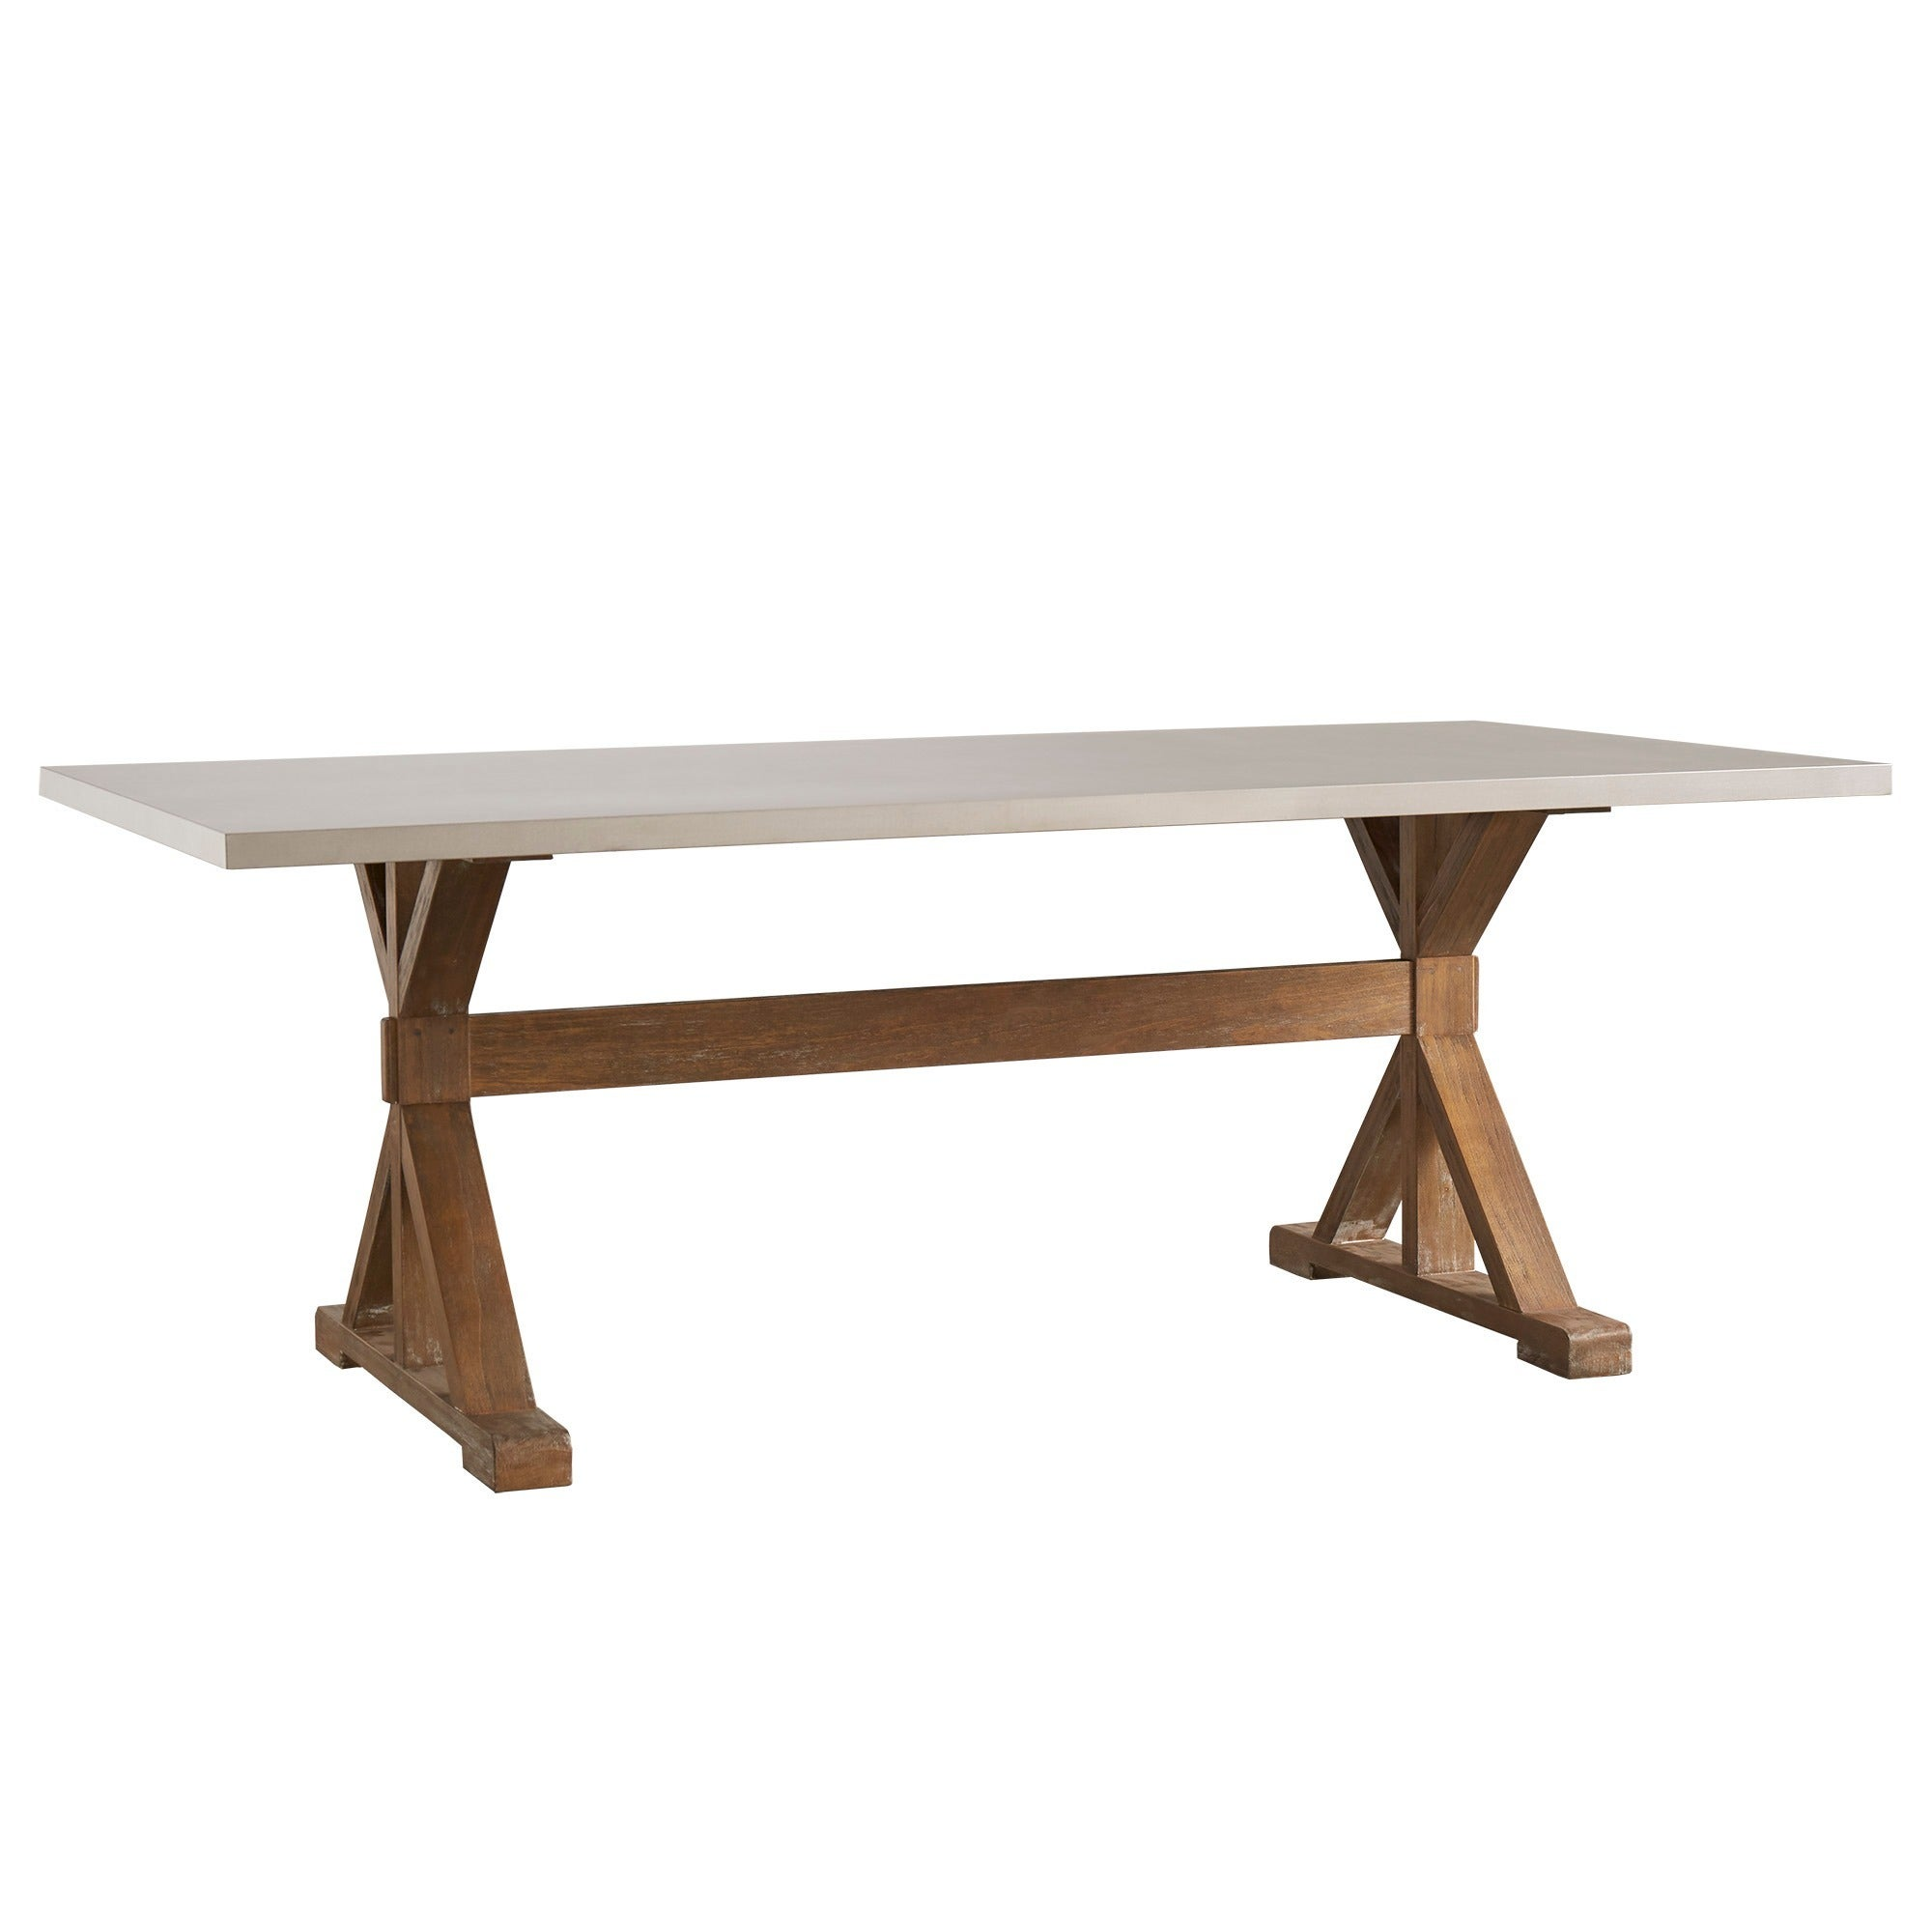 Trumbull Stainless Steel Dining Table by iNSPIRE Q Bold - Free Shipping  Today - Overstock.com - 15928897